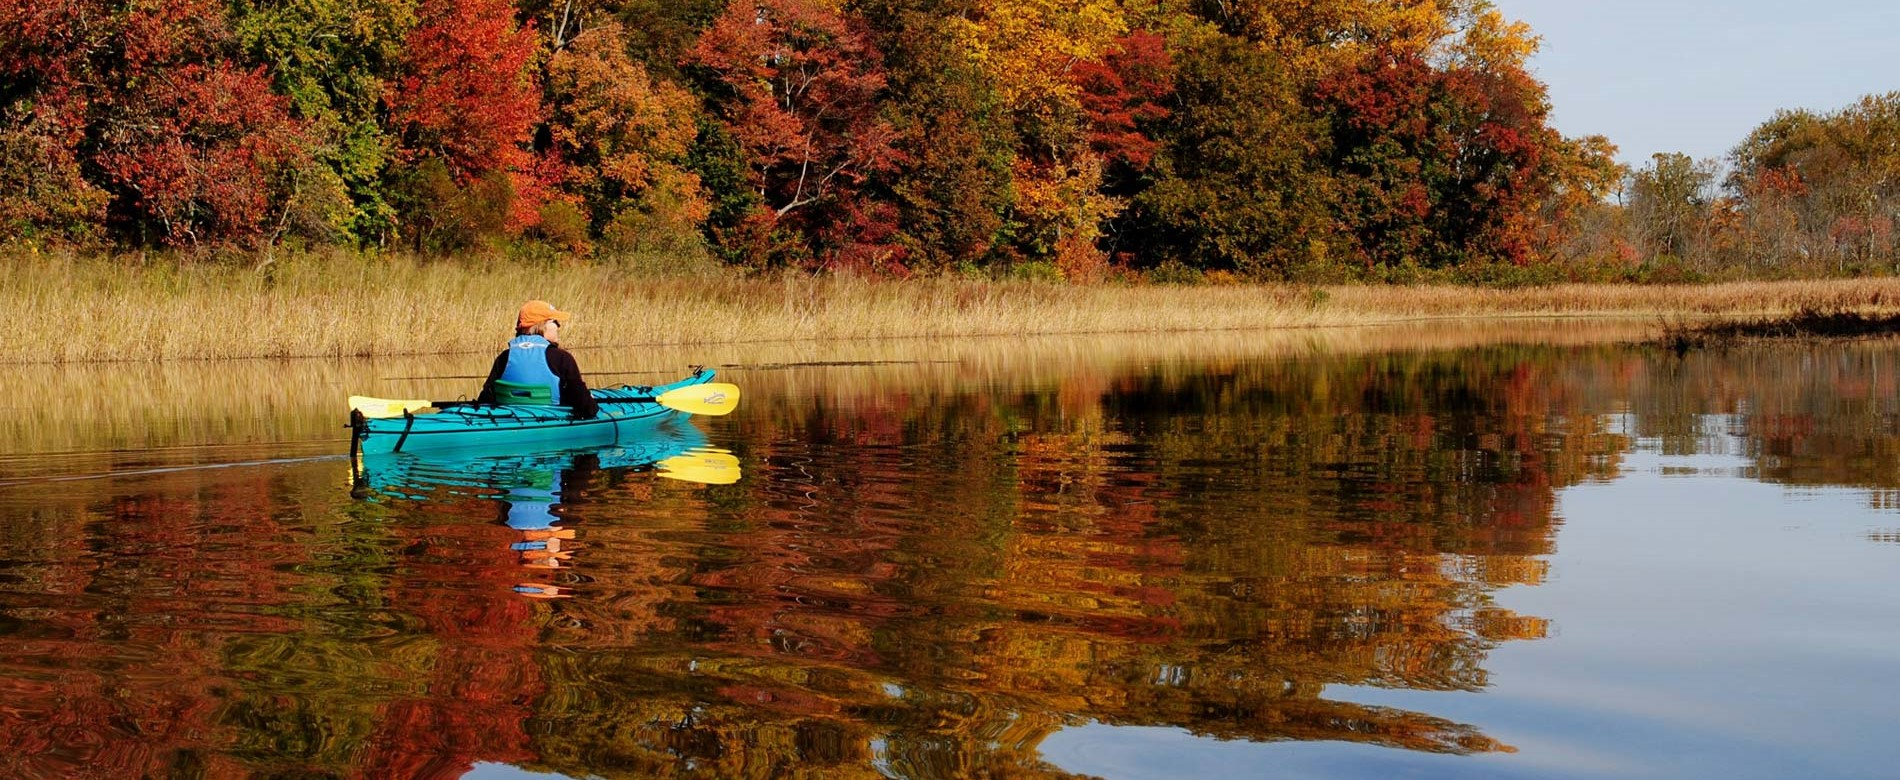 Paddler on the Chester river with fall colored leaves on the trees in the background. Many reds and browns.